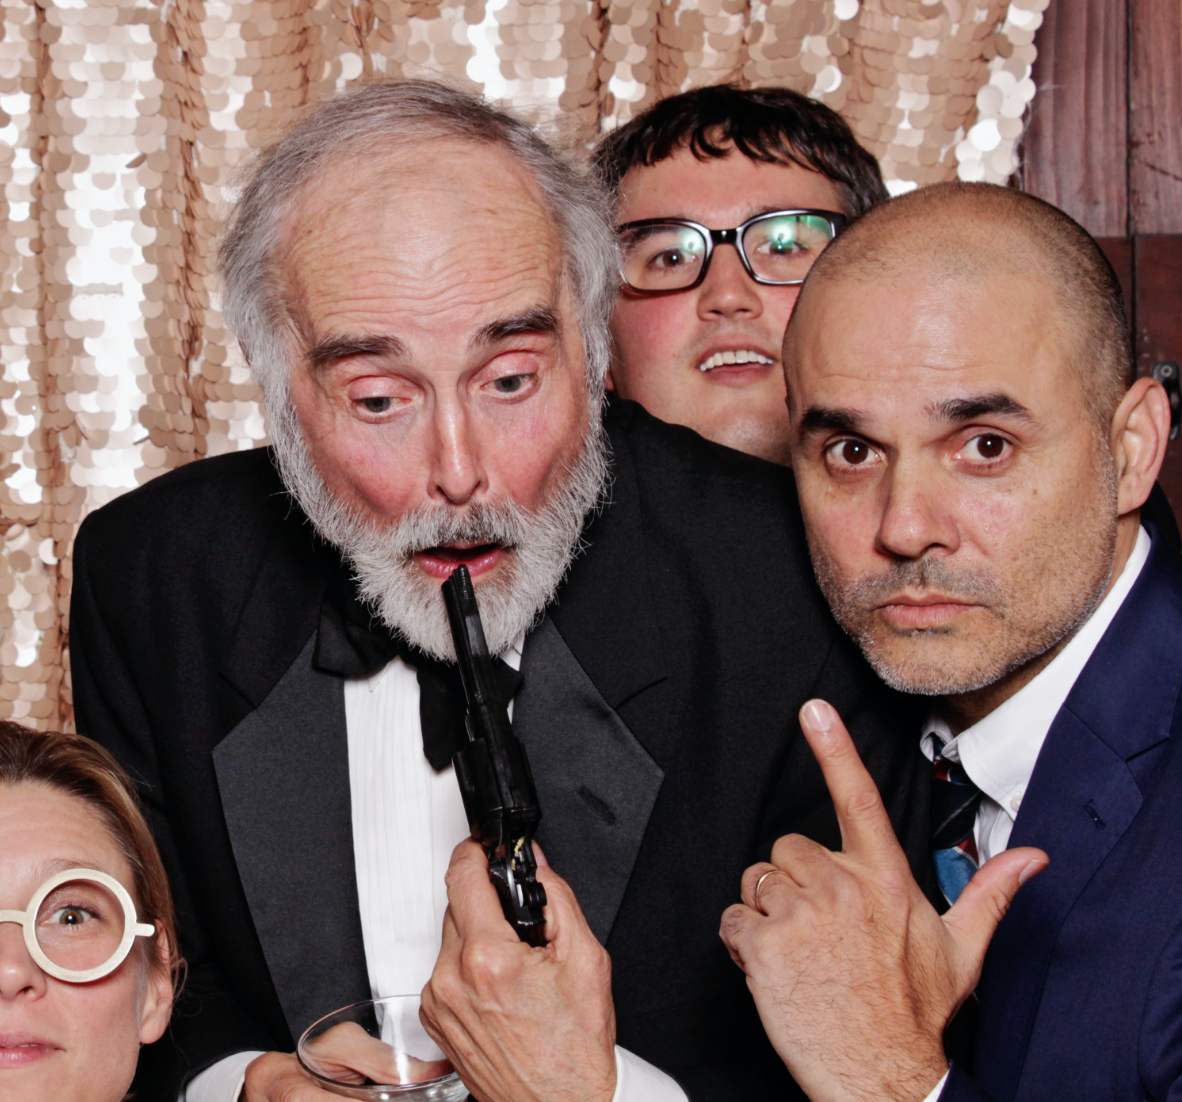 this is Gerry Graf taking a photo with a Sean Connery impersonator at the Barton F Graf holiday party in 2016. I never want to lose this incredible photo so i'm blogging it.